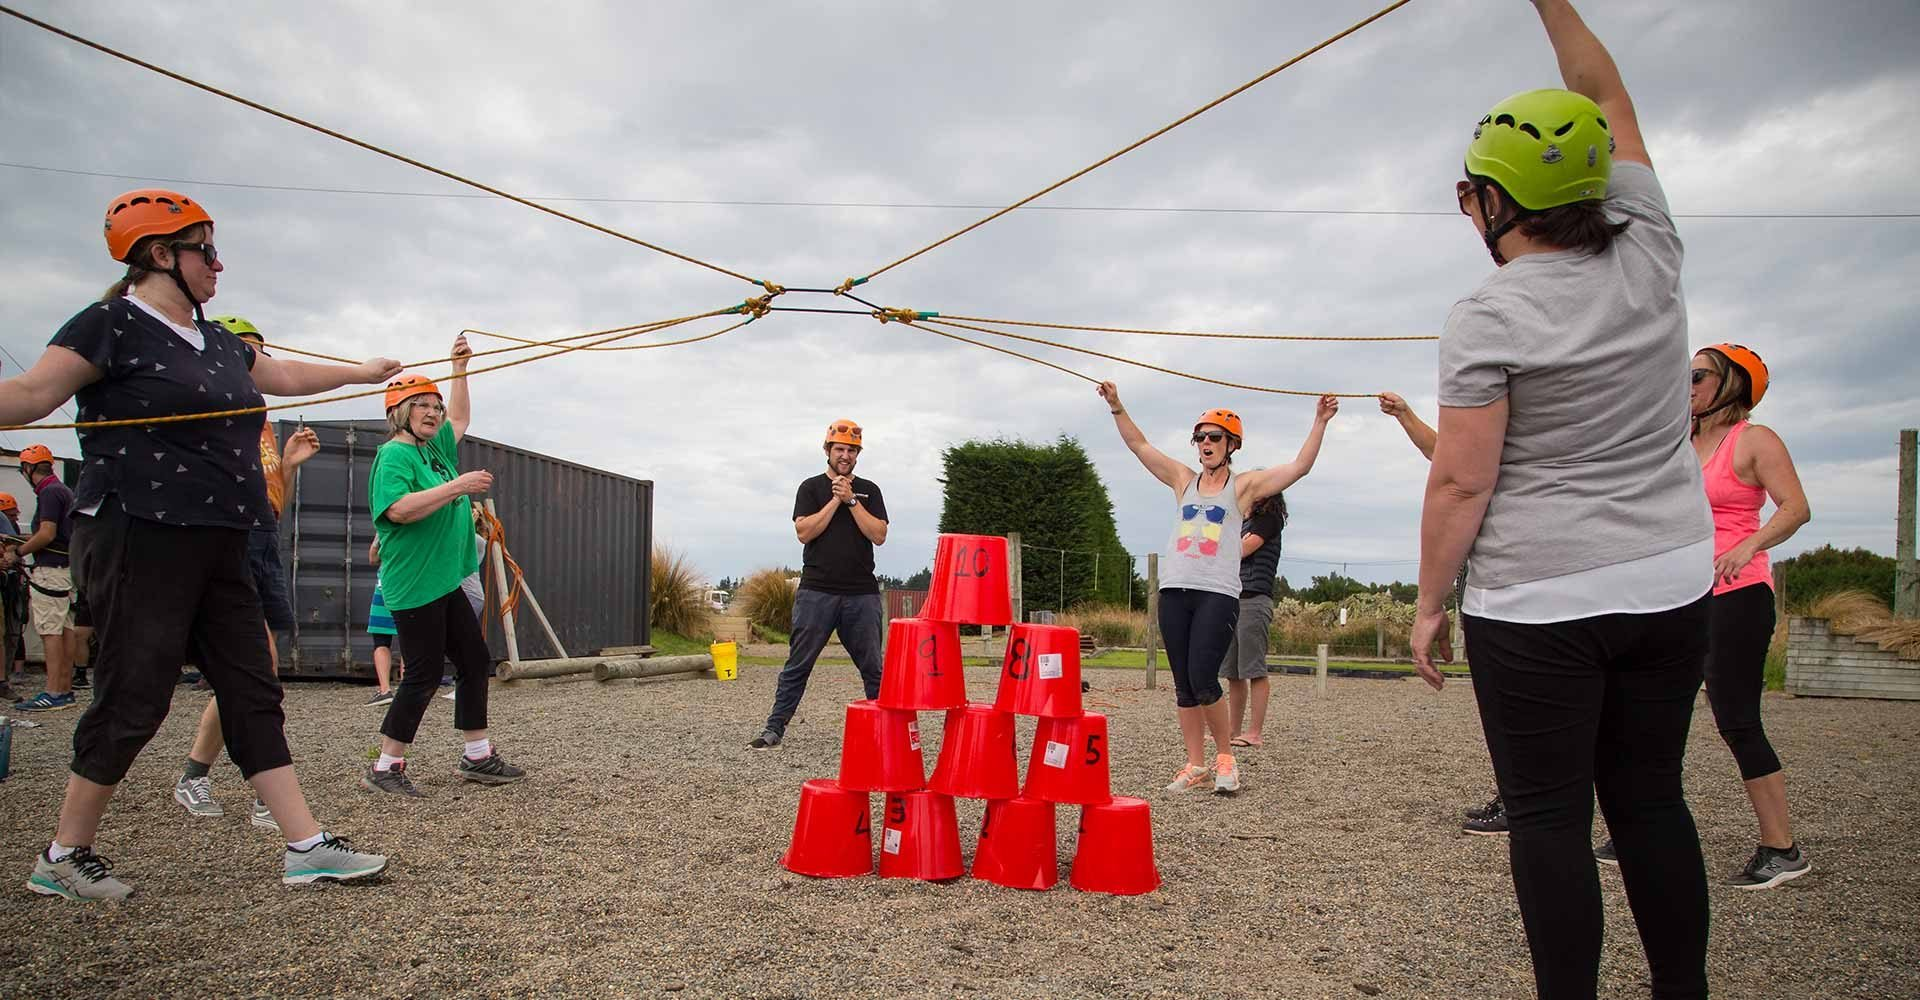 team building, low ropes, adventure based learning, corporate team building, workplace culture, working together, improve communication, work function, work do